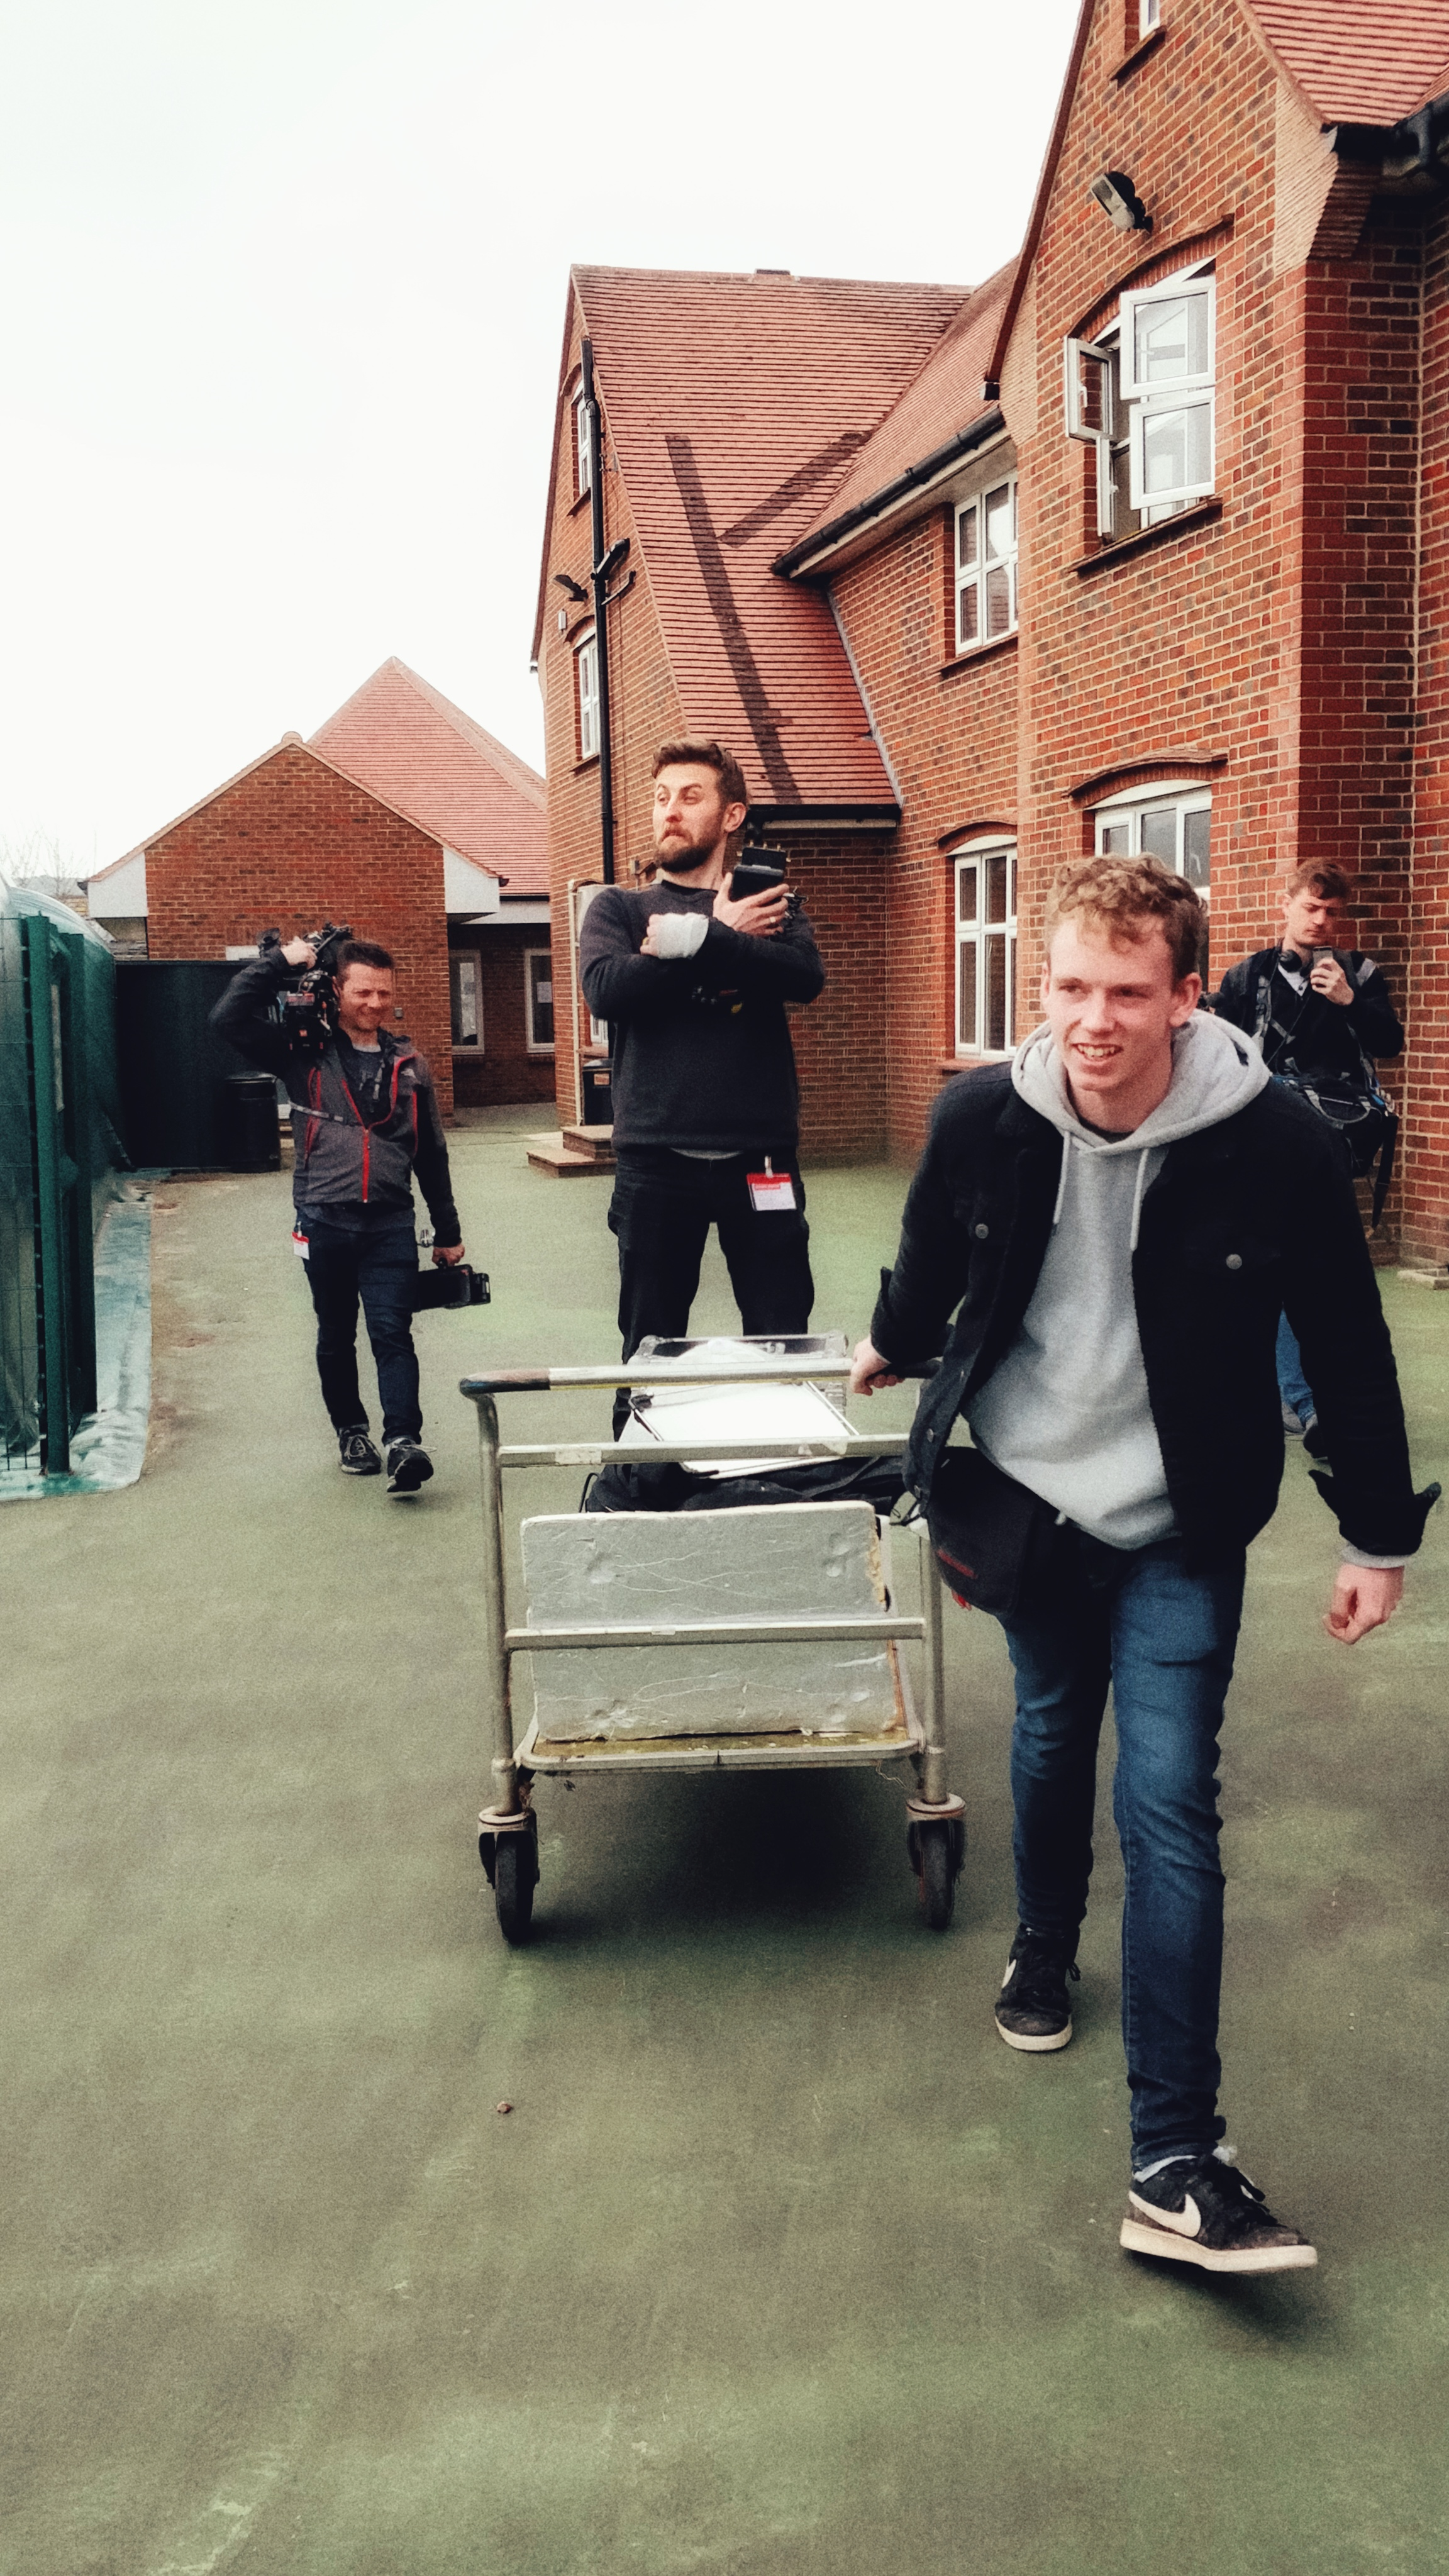 Walking from location to location is tiring…. Director Danny prefers to travel by trolley. Shout out to Chief Puller, Rhys